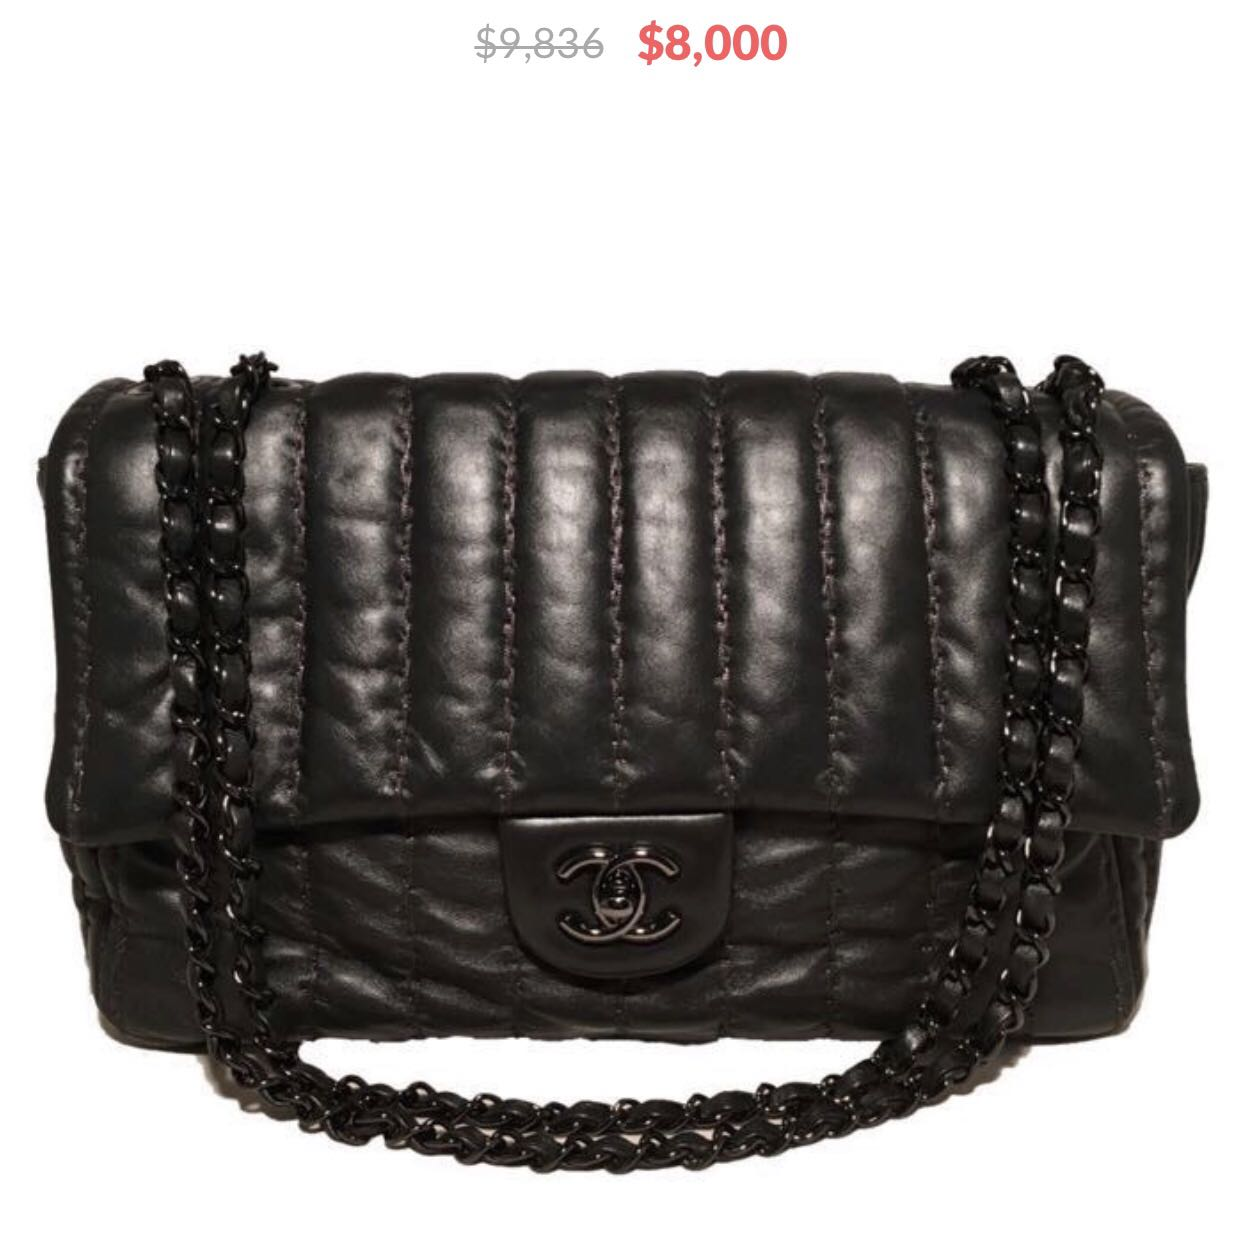 d1fc96bba9c Chanel Black Shimmery Leather Striped Quilted Jumbo Classic Flap, Luxury,  Bags   Wallets, Handbags on Carousell